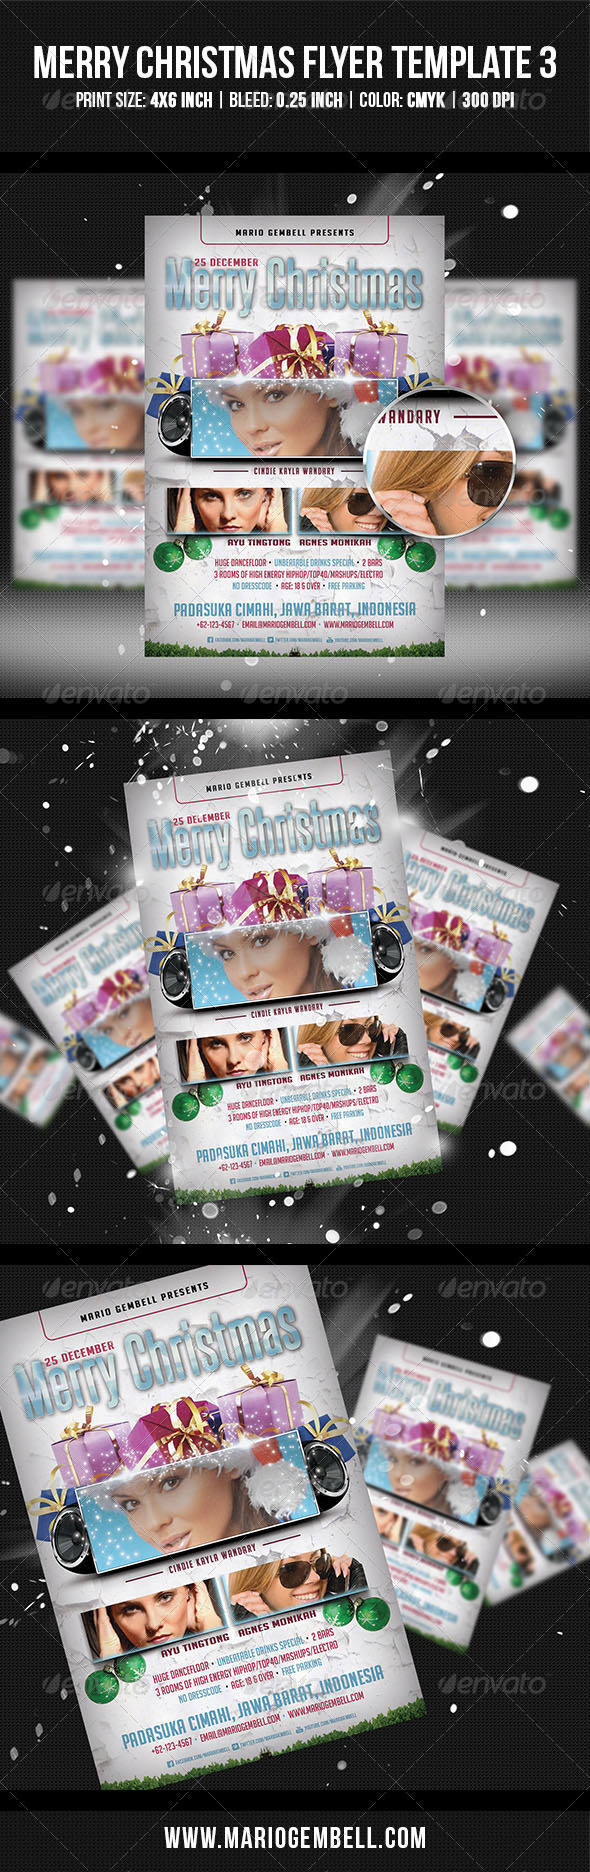 GraphicRiver Merry Christmas Flyer Template 3 3503568